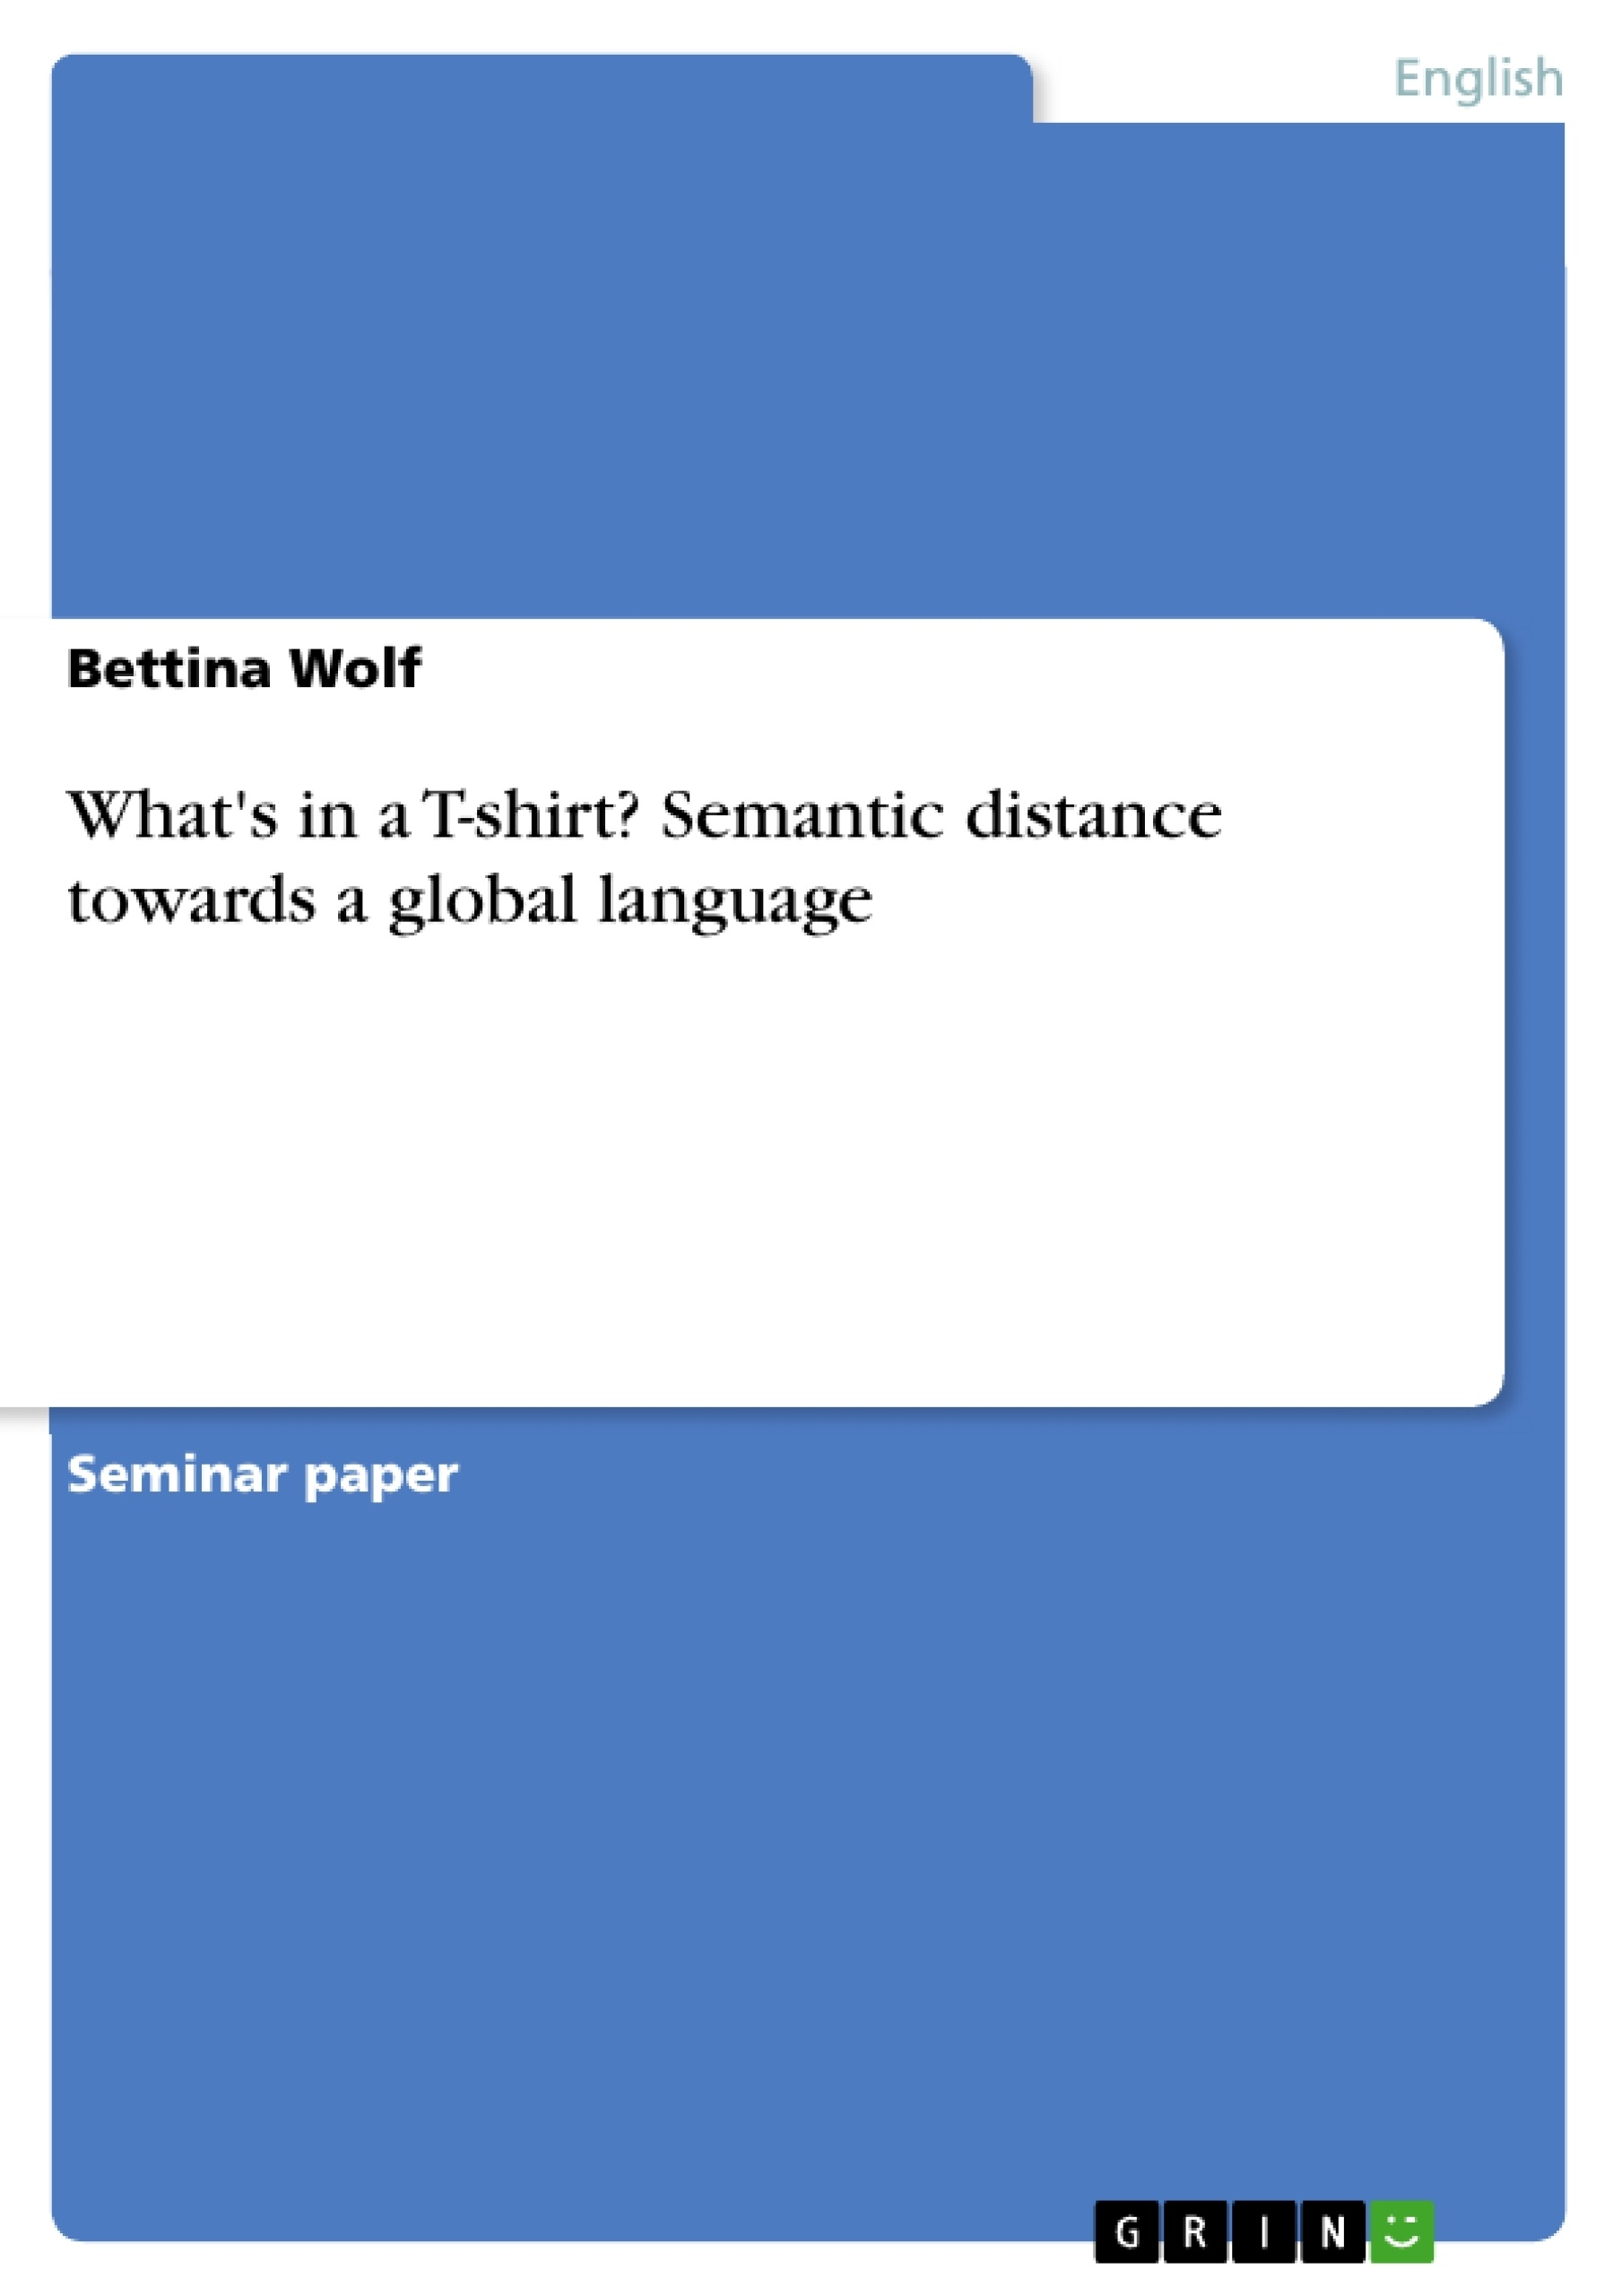 Title: What's in a T-shirt? Semantic distance towards a global language